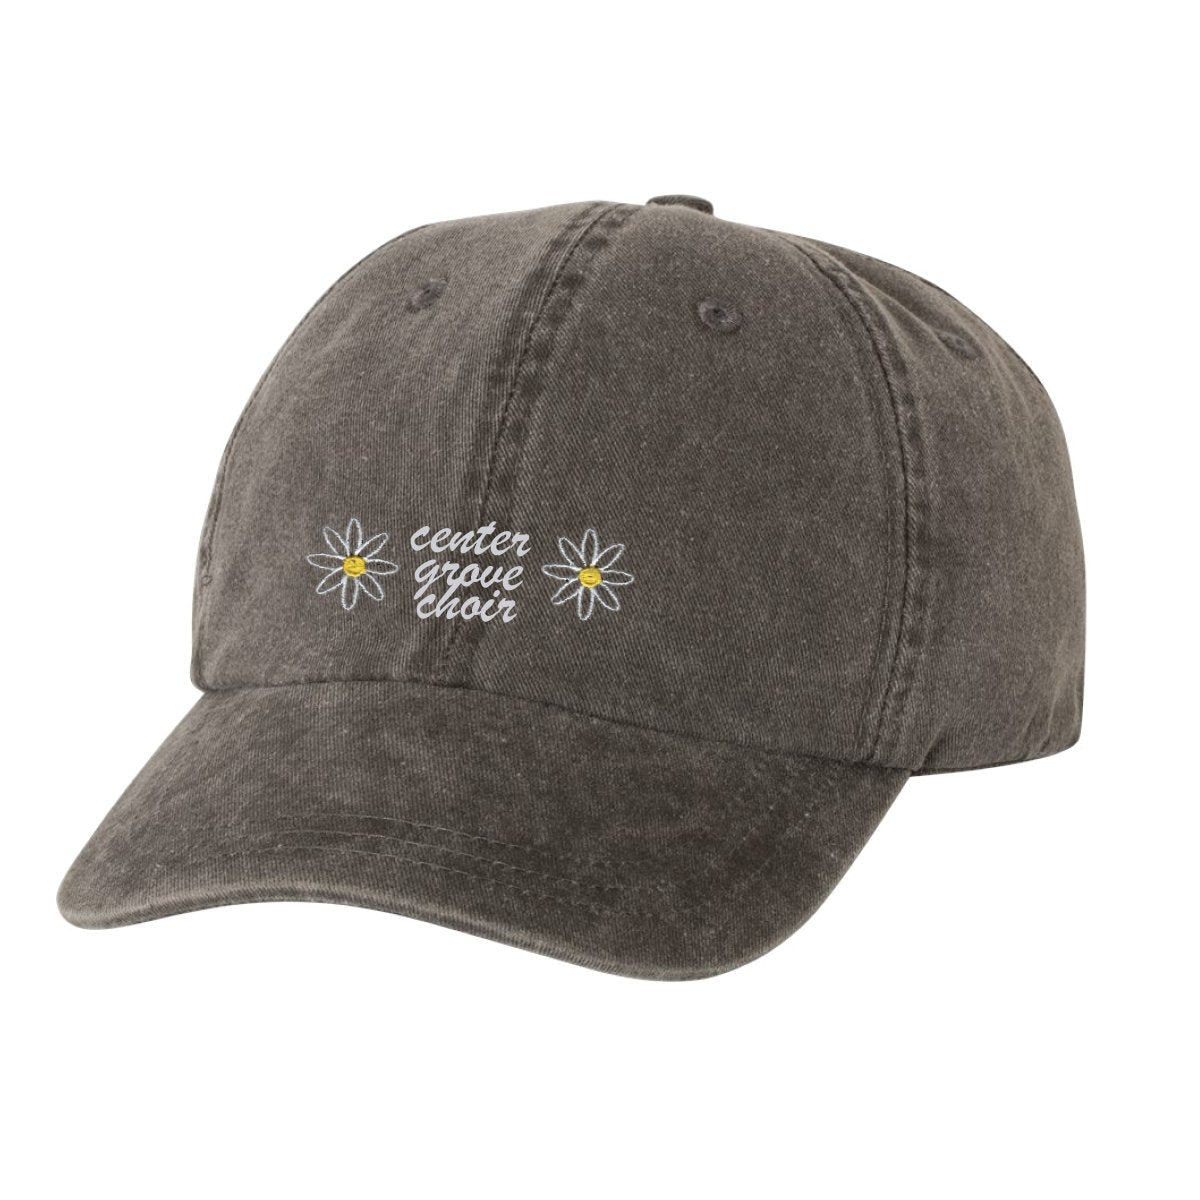 Center Grove Choir Daisy Baseball Hat